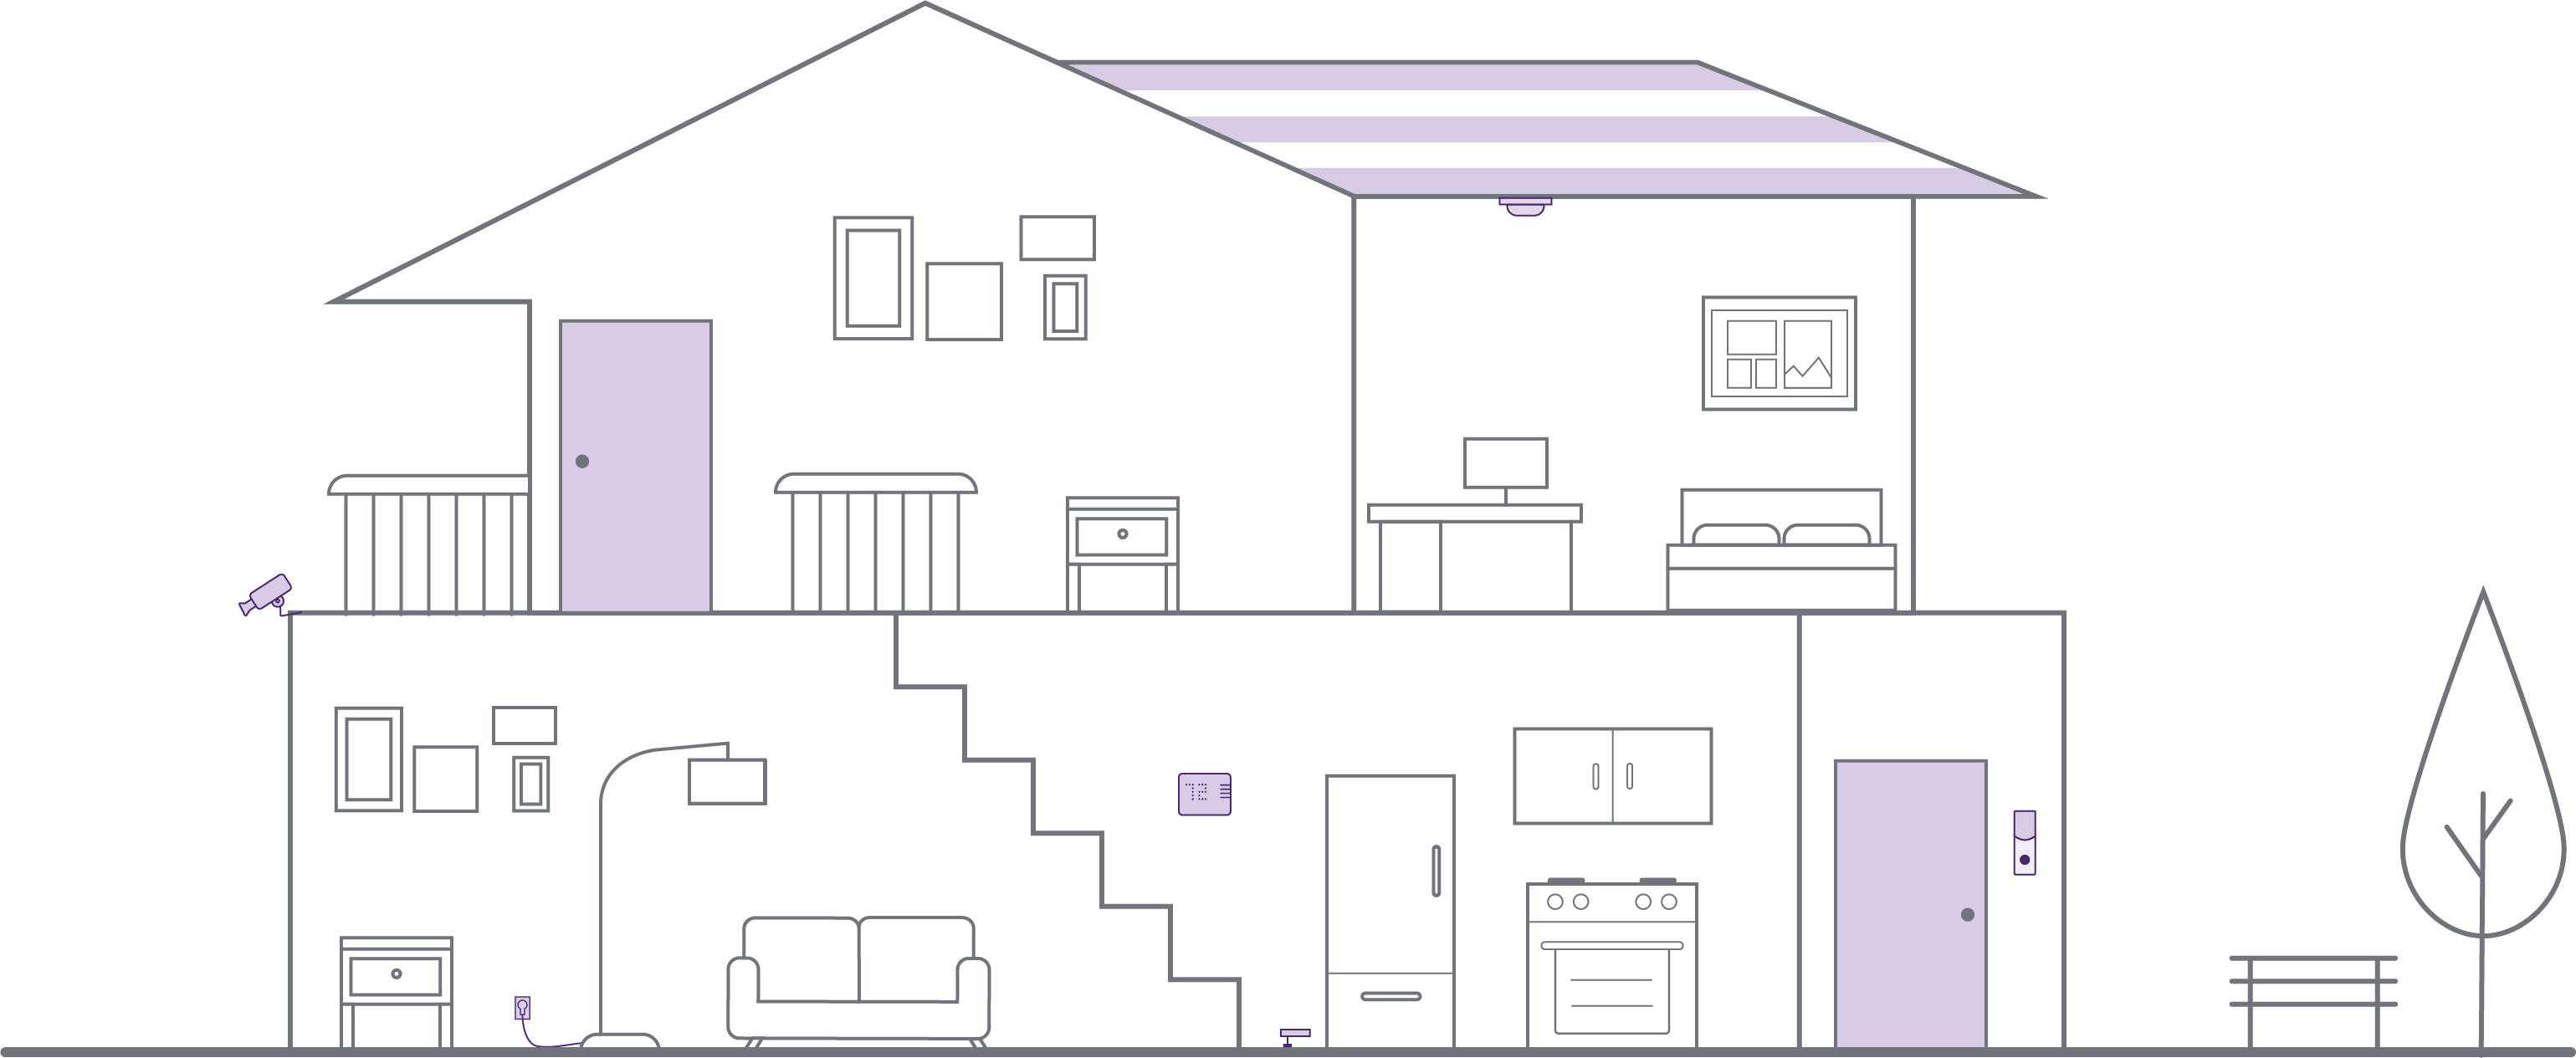 House blueprint drawing with smart home security devices